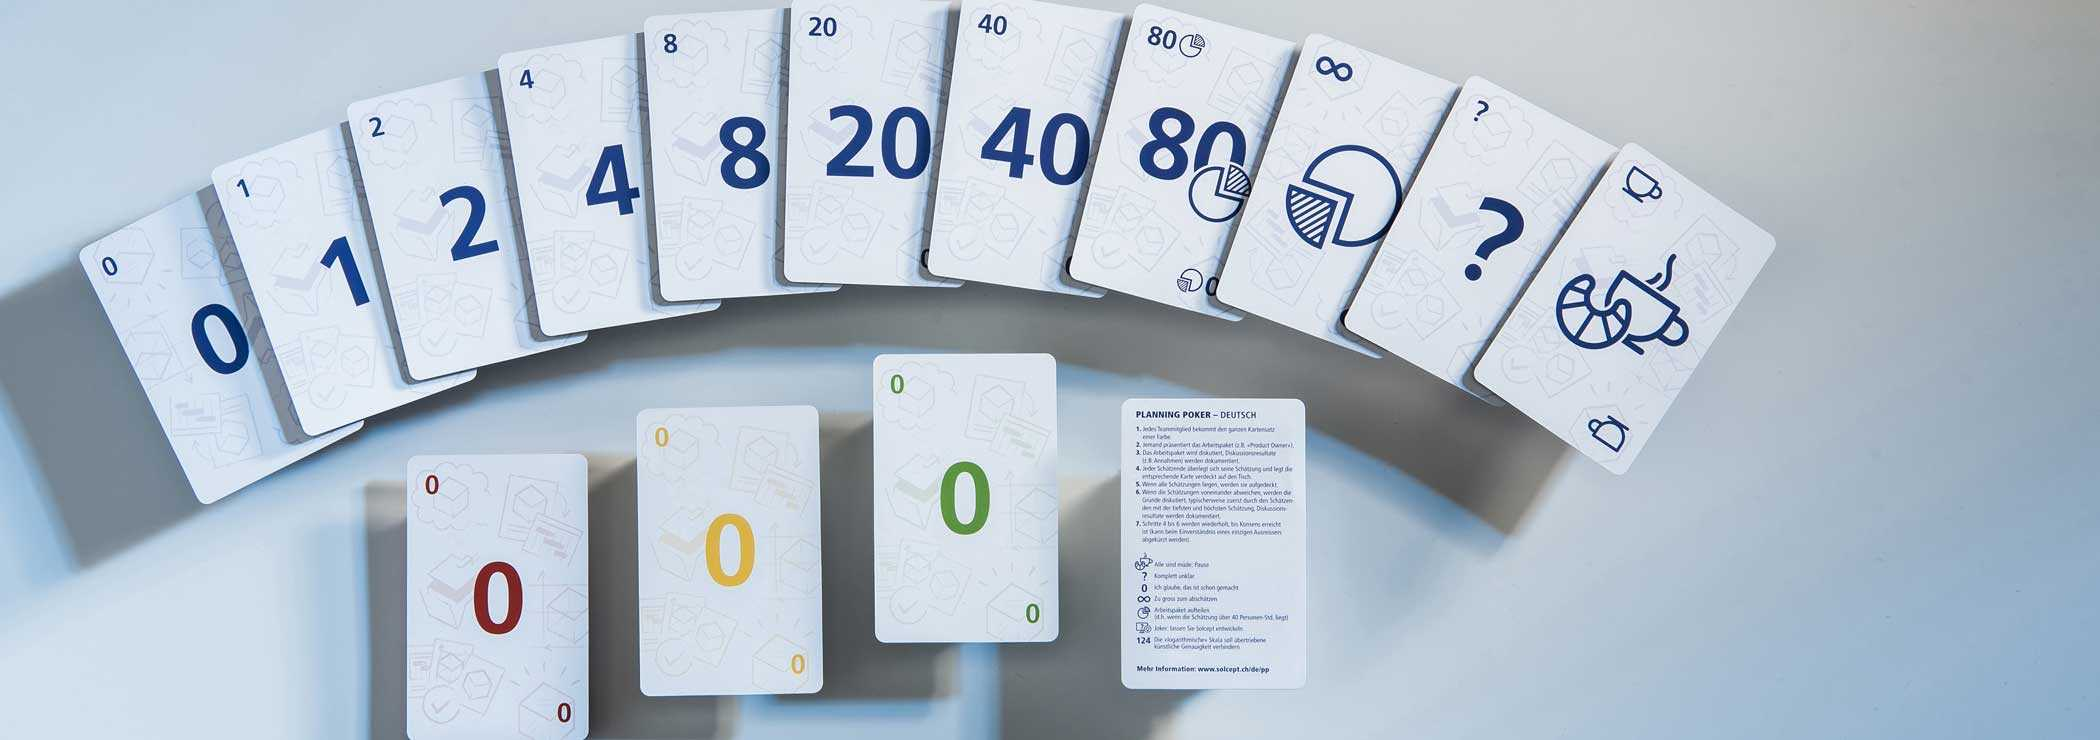 Instructions For Planning Poker With Planning Poker Cards Template